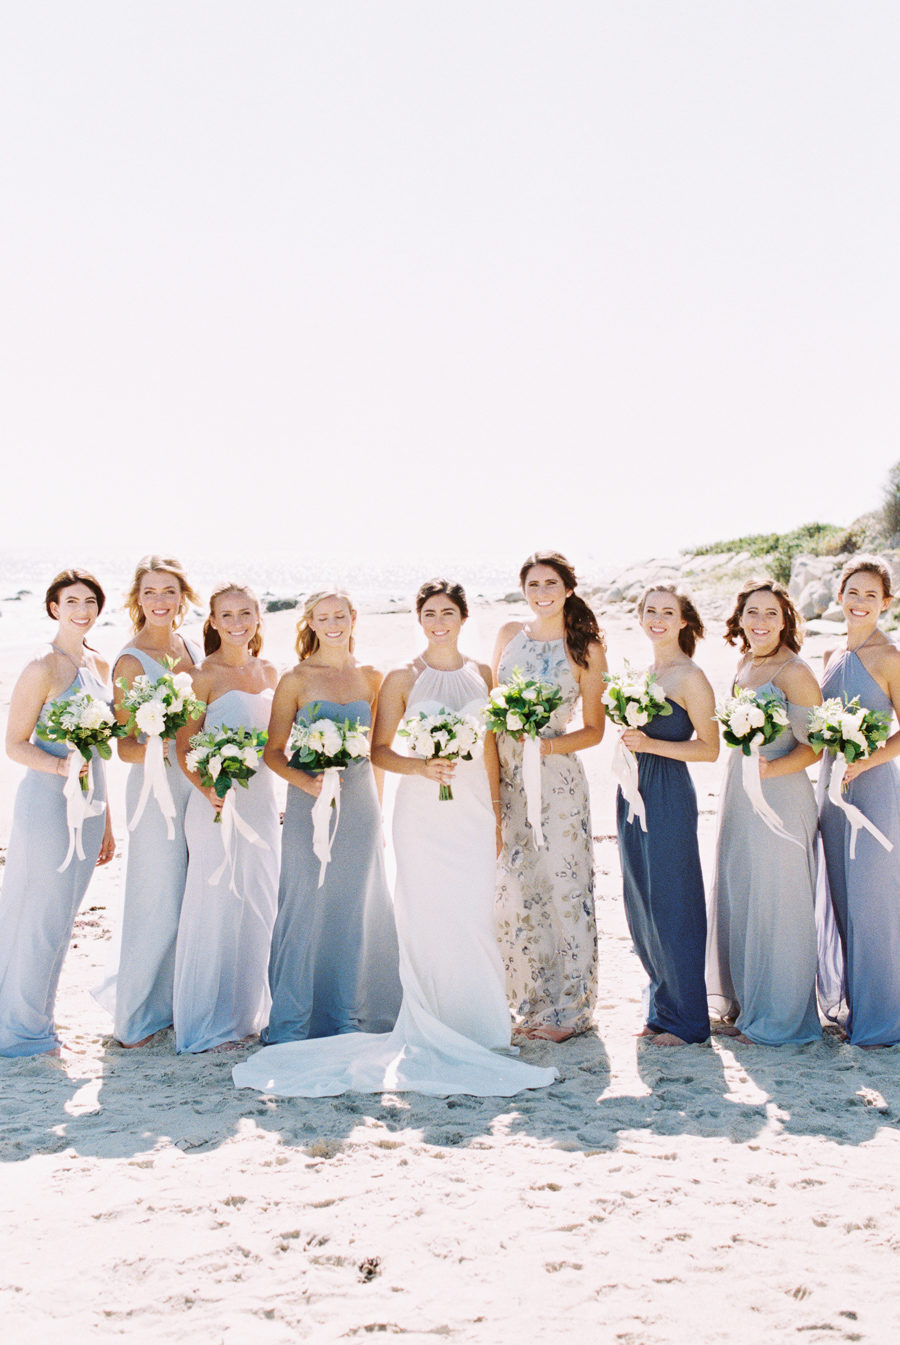 Bride and bridesmaid on beach